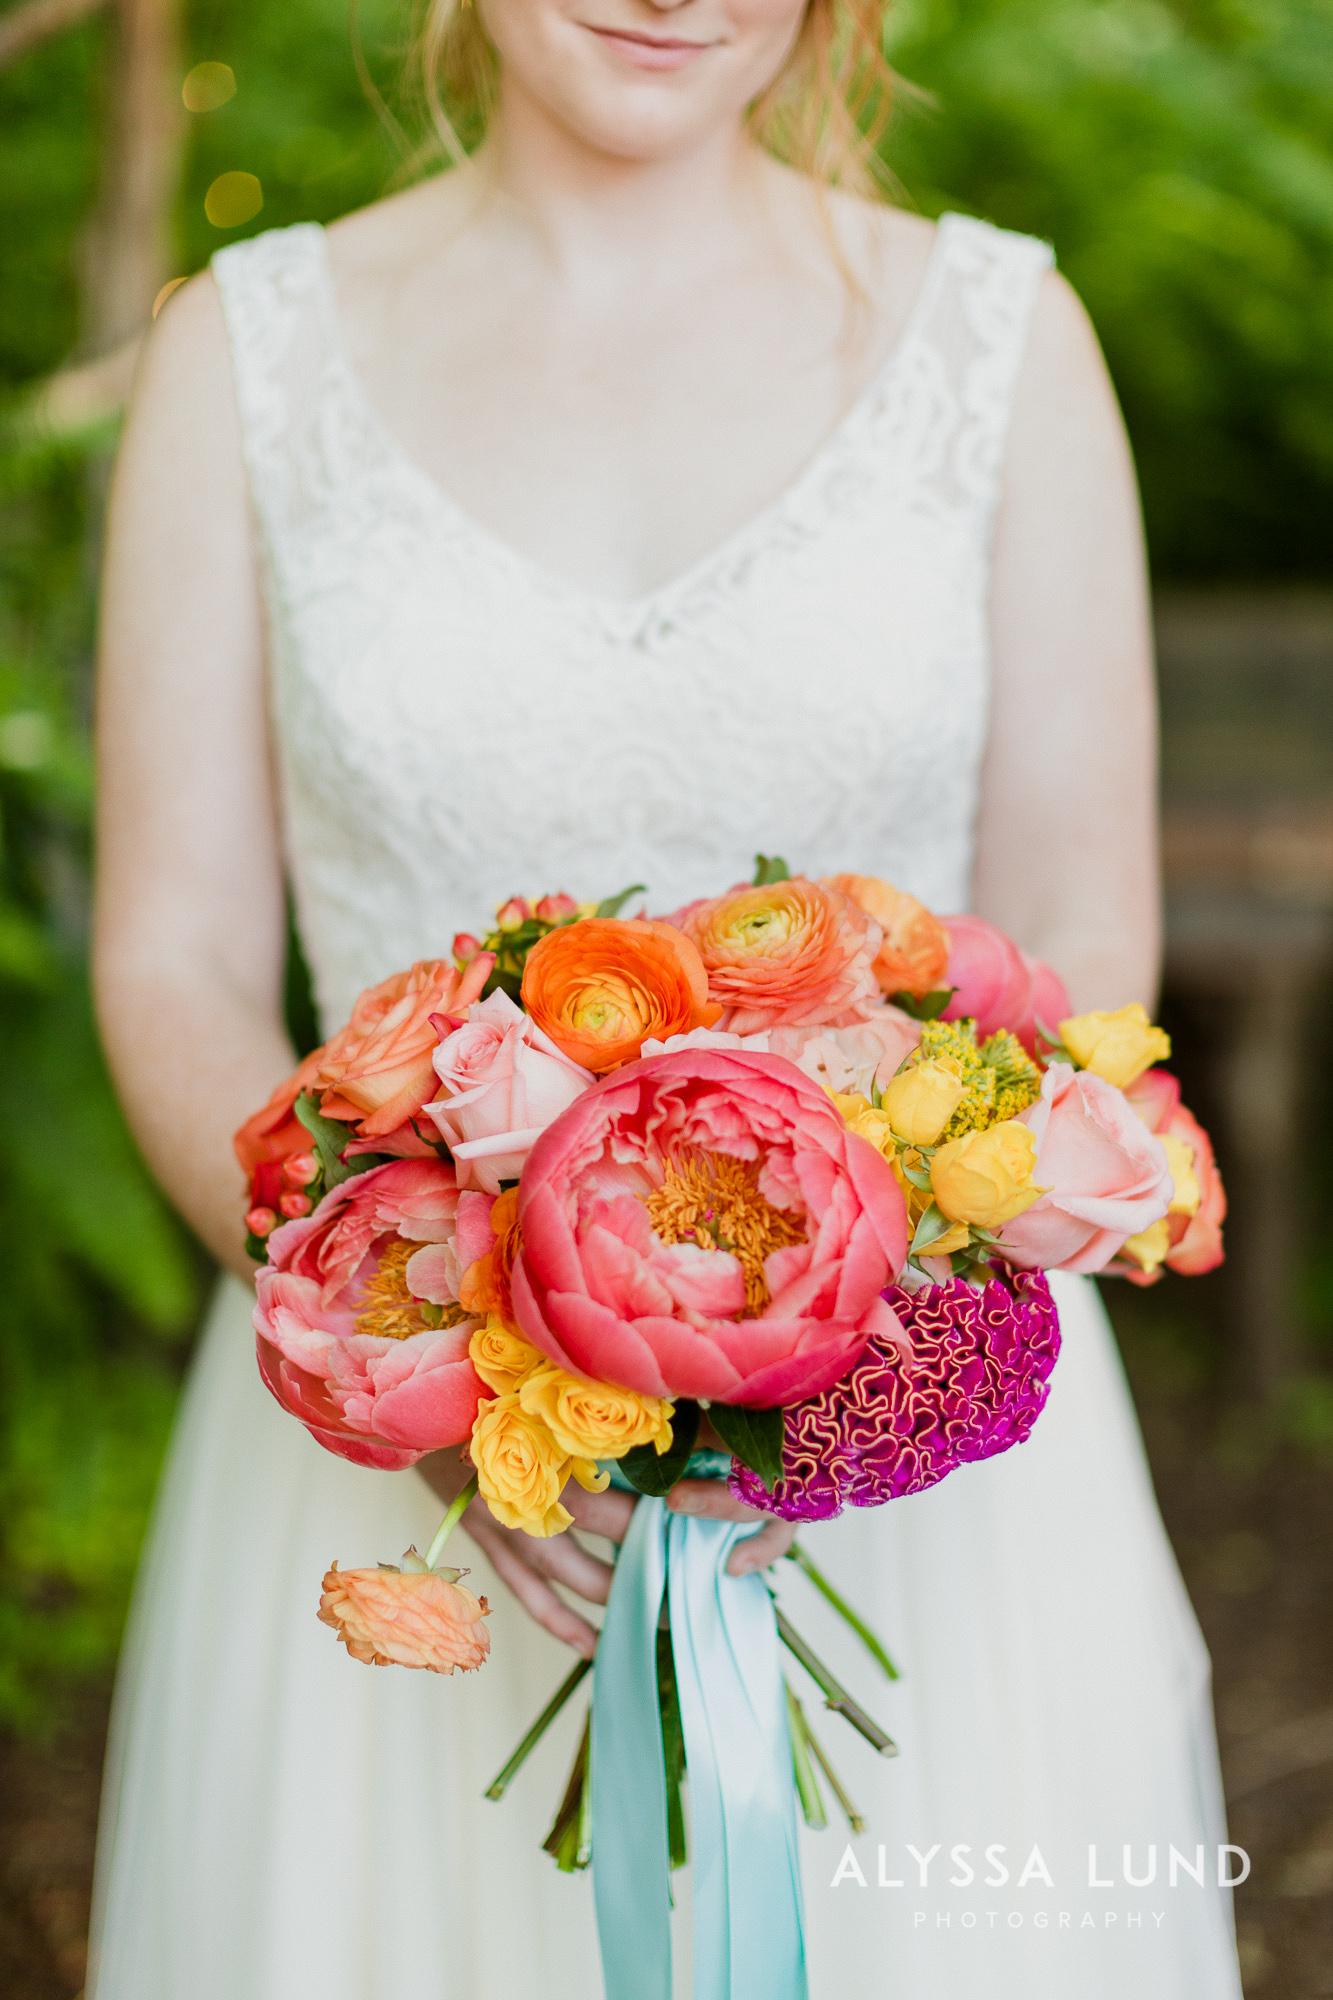 Queer wedding photography inspiration by Alyssa Lund Photography-23.jpg